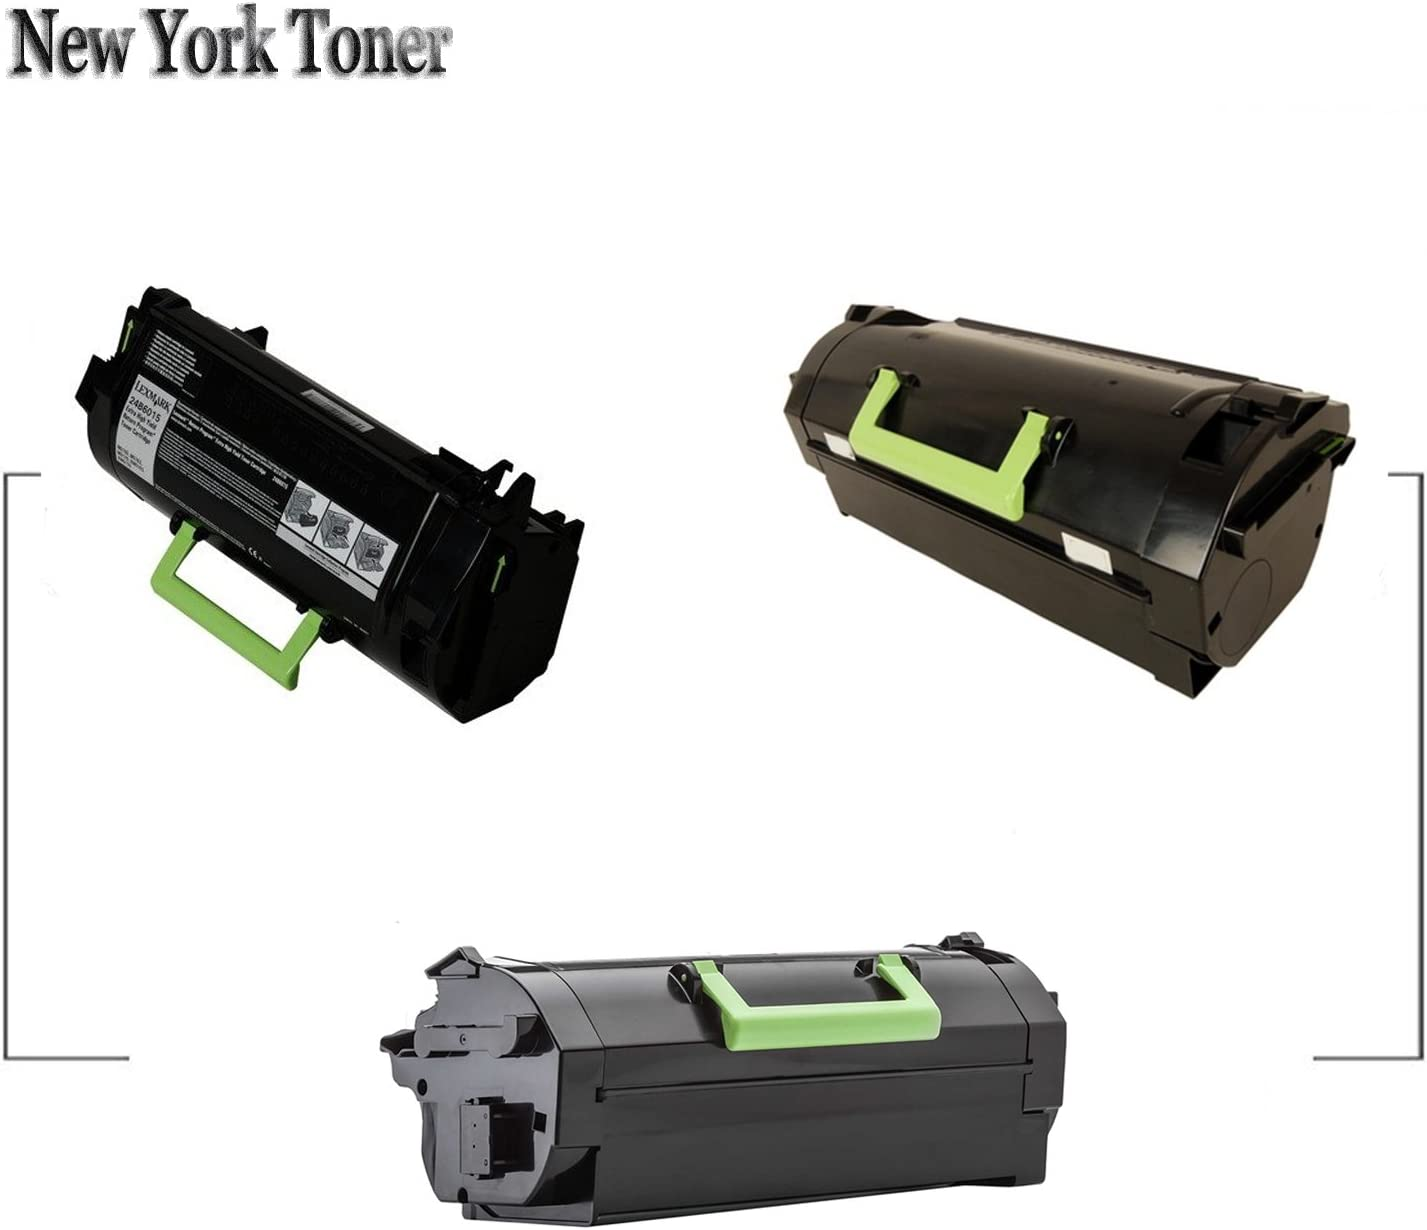 NYT Remanufactured 2 Pack 24B6015 Toner for Lexmark M5155 M5163 Made in USA Black